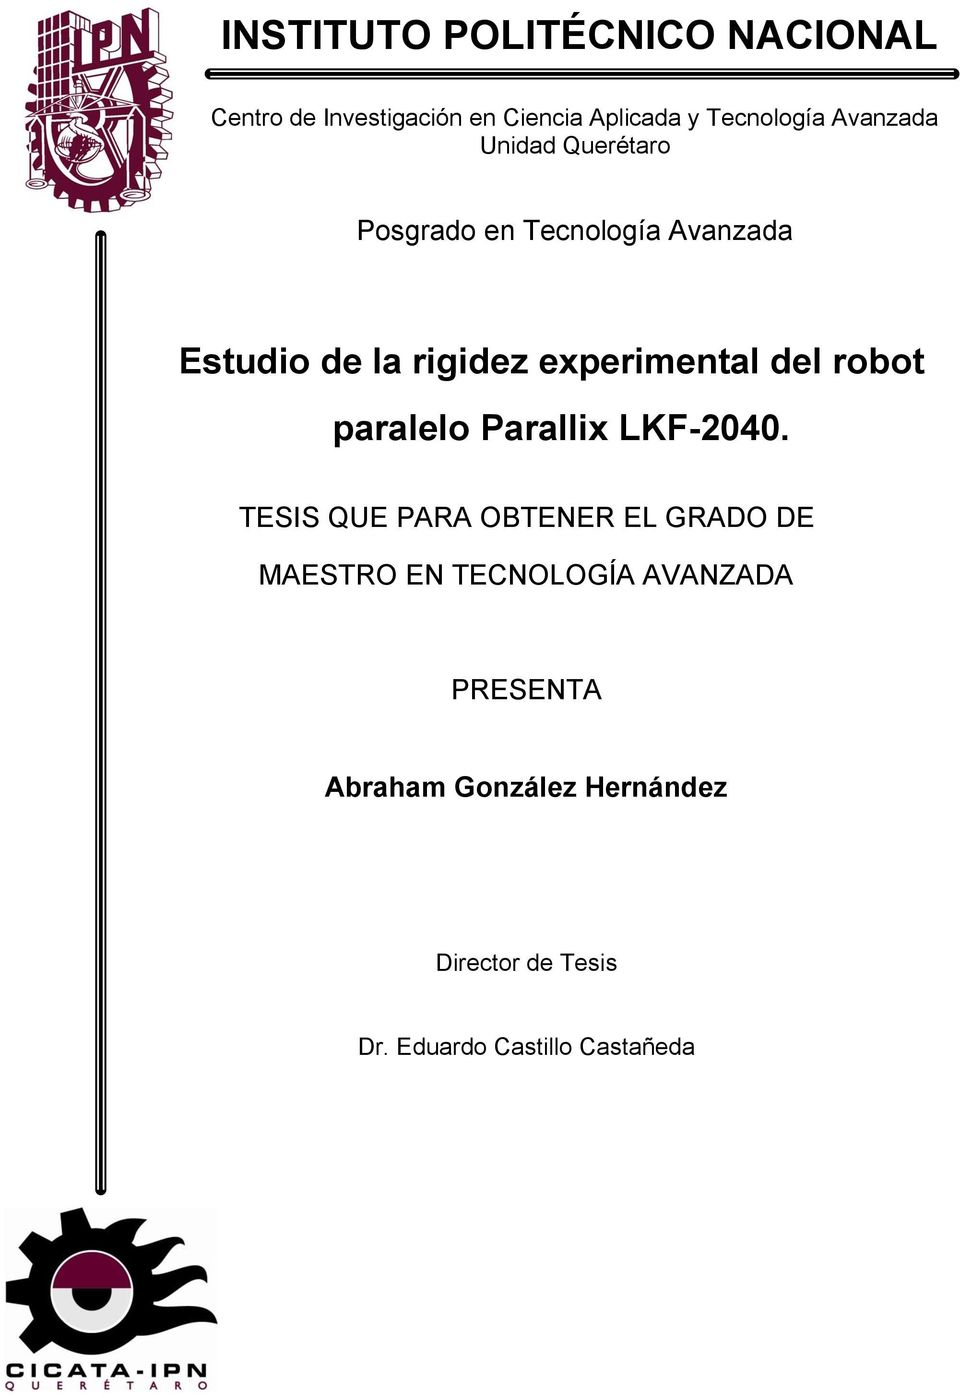 del robot paralelo Parallix LKF-2040.